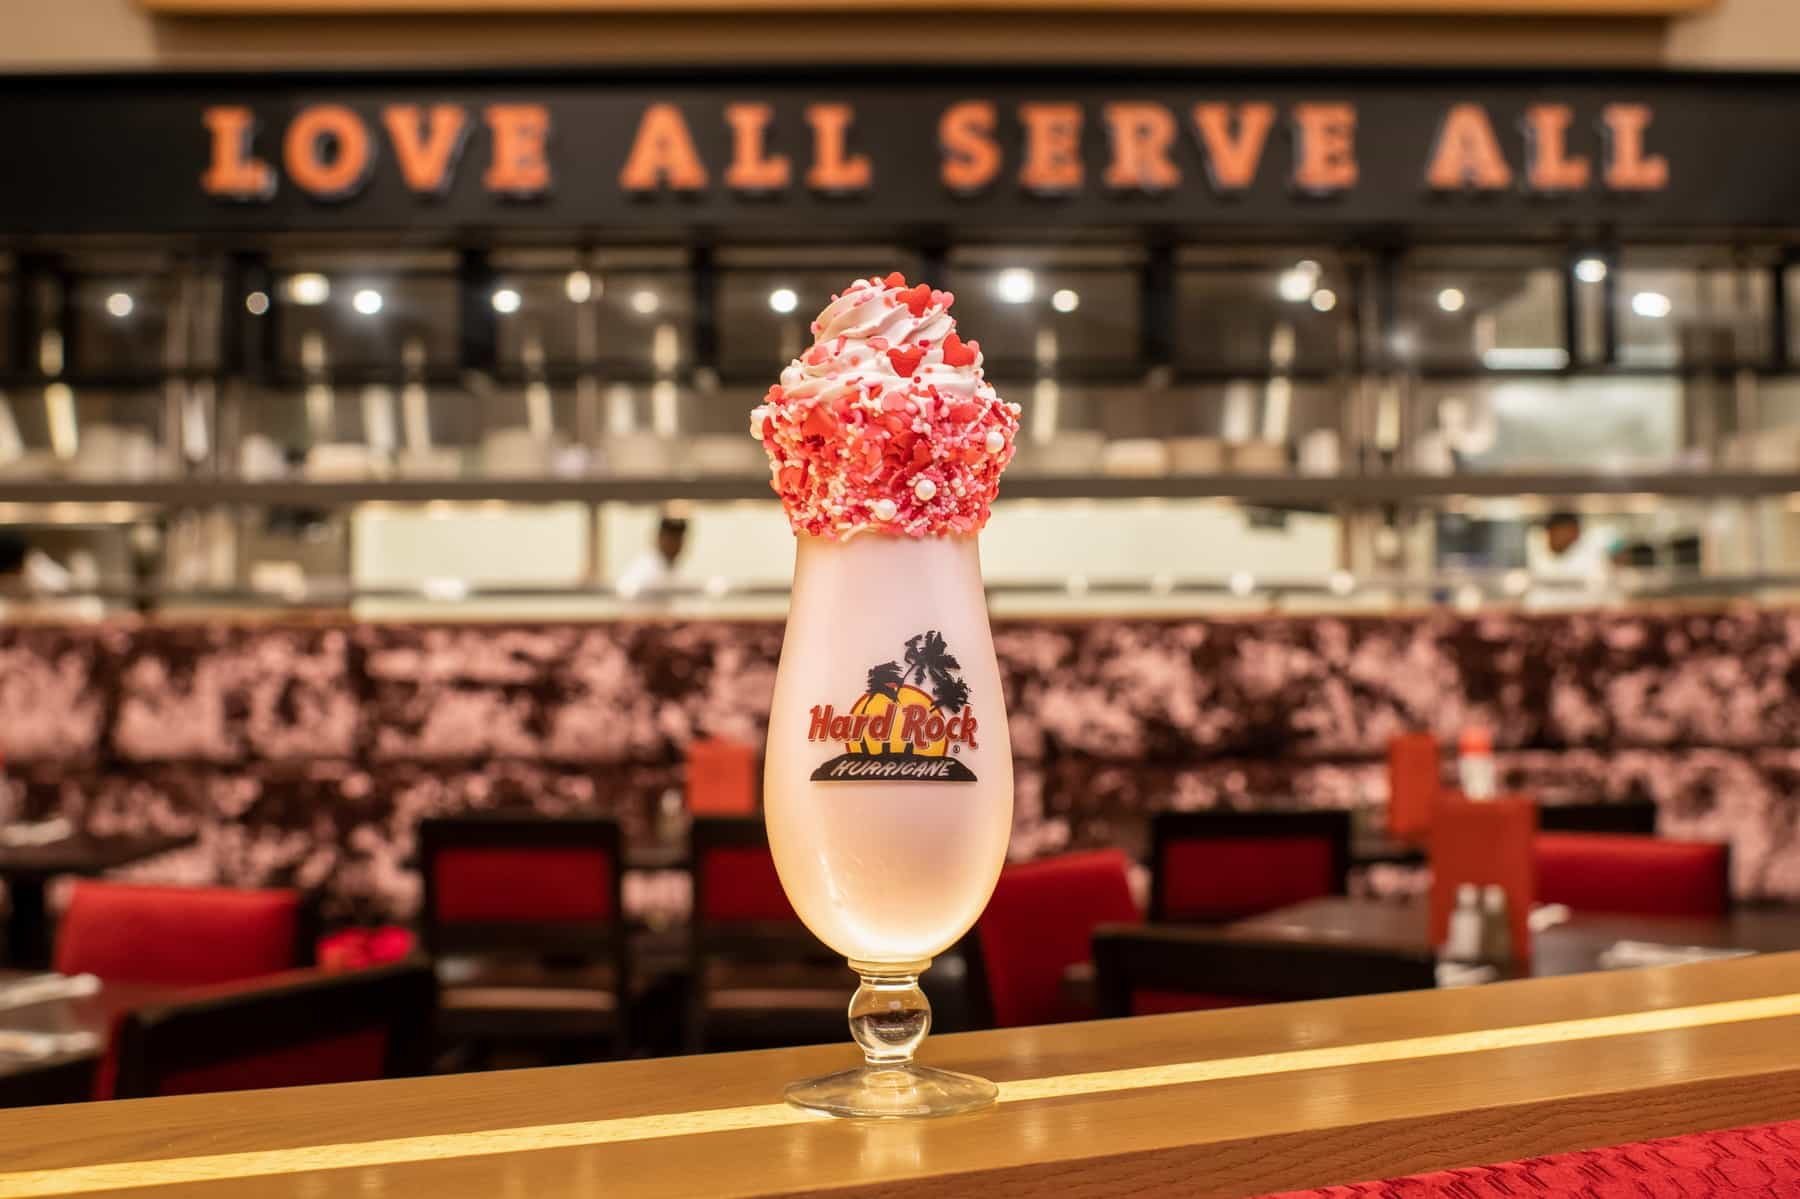 'The Falvours of Love': Hard Rock Cafe celebra o amor com menu especial